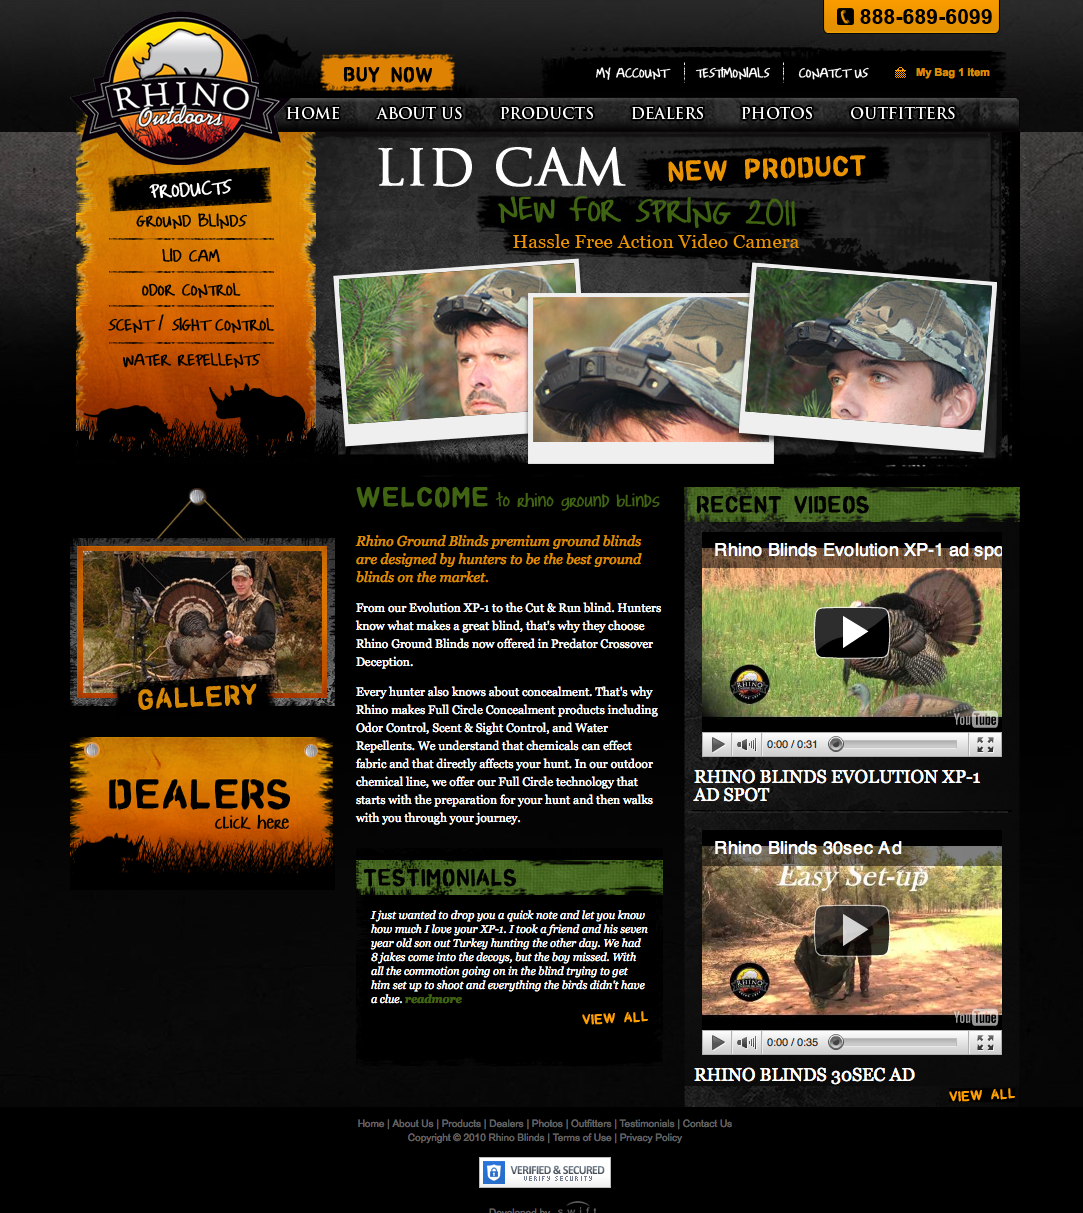 Rhino Outdoor Launches New Website and Lid Cam Action Video Camera